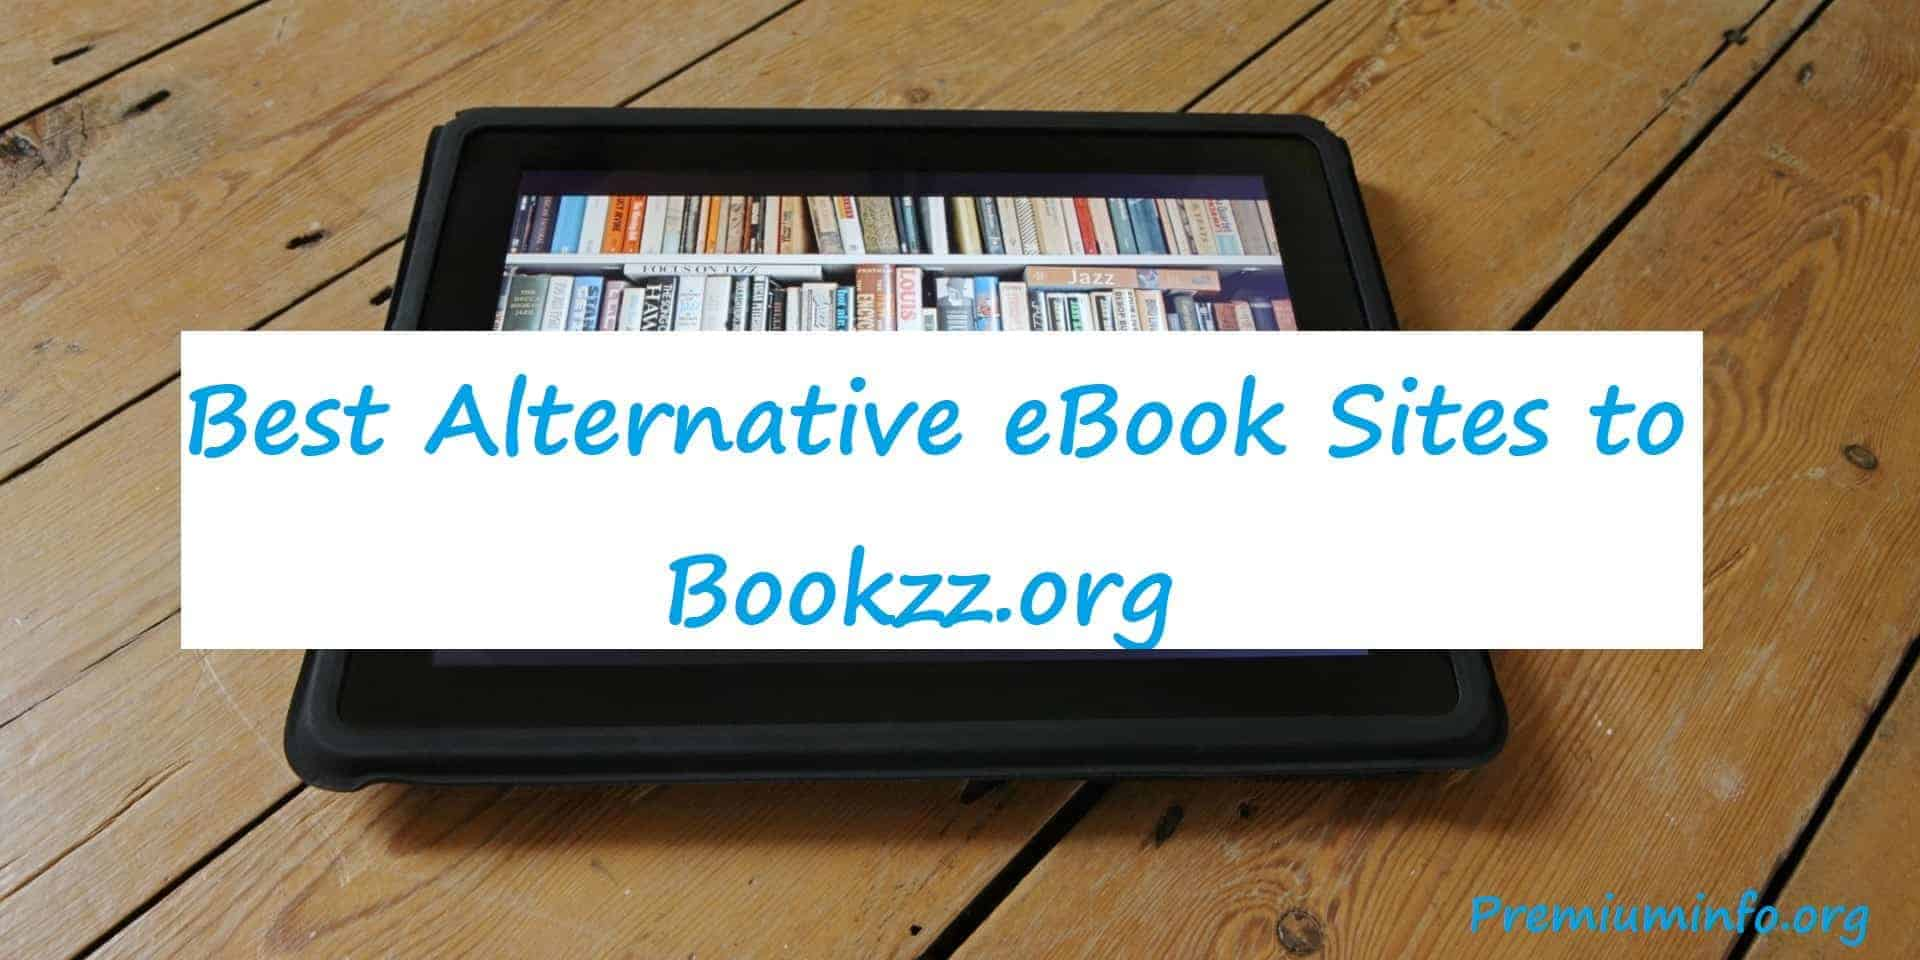 bookzz, bookzz alternatives